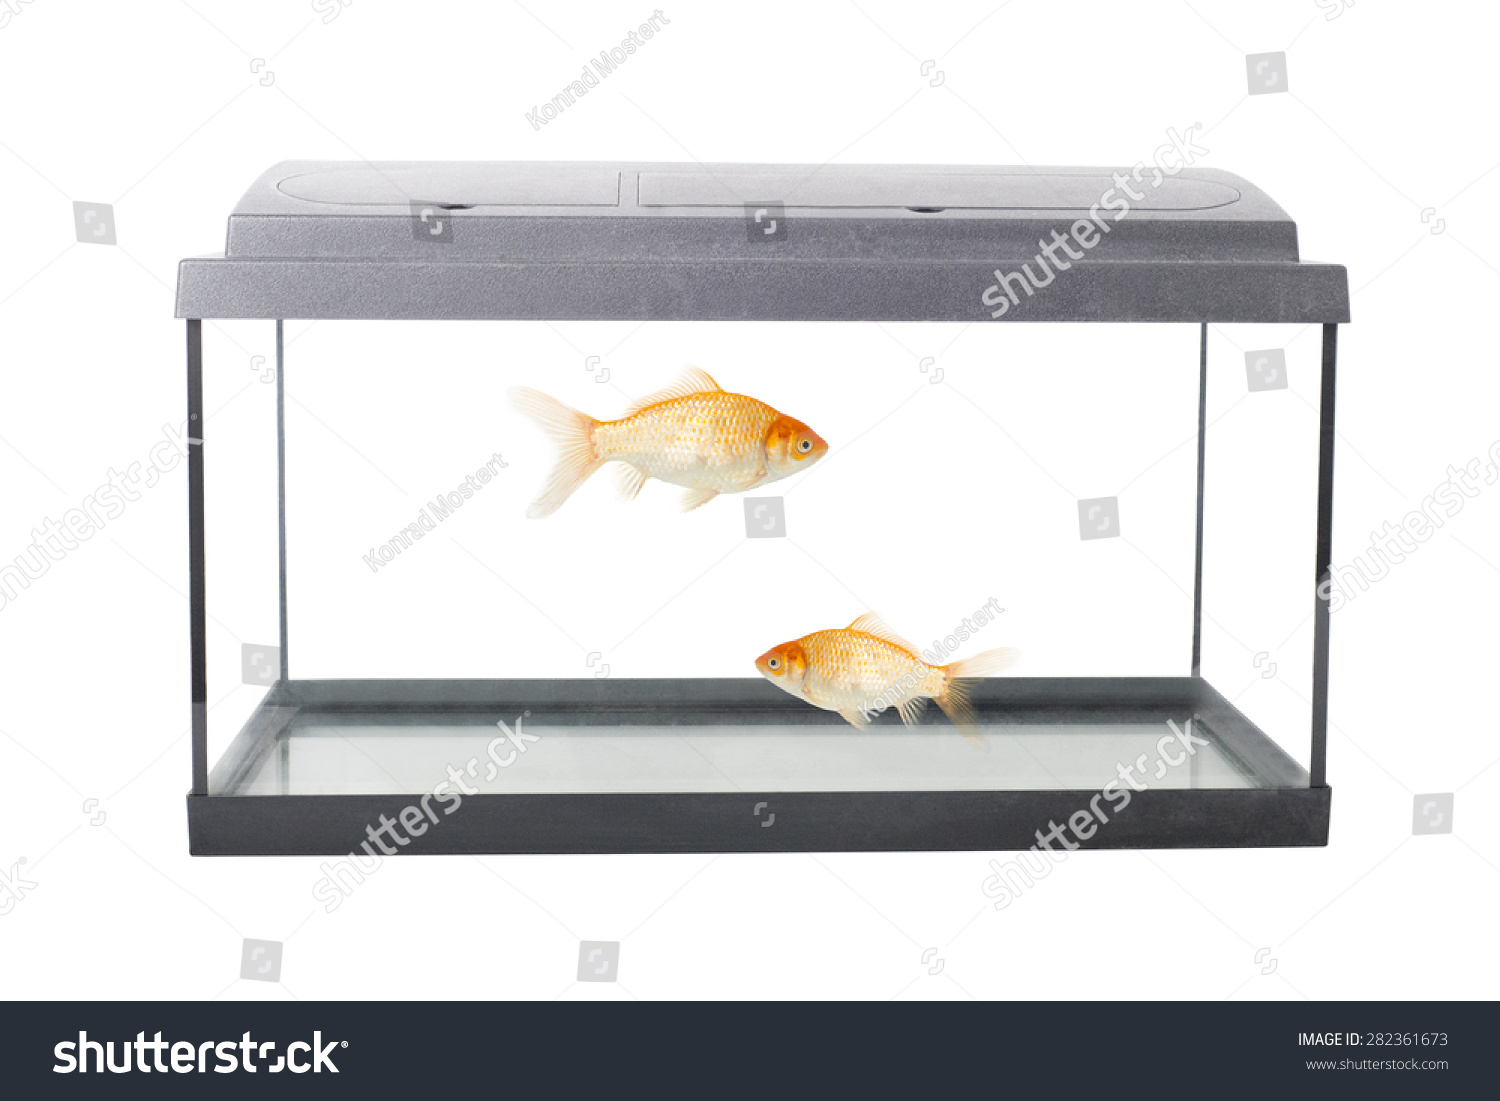 Isolated empty fish tank clipping path stock photo for Fish stock tank